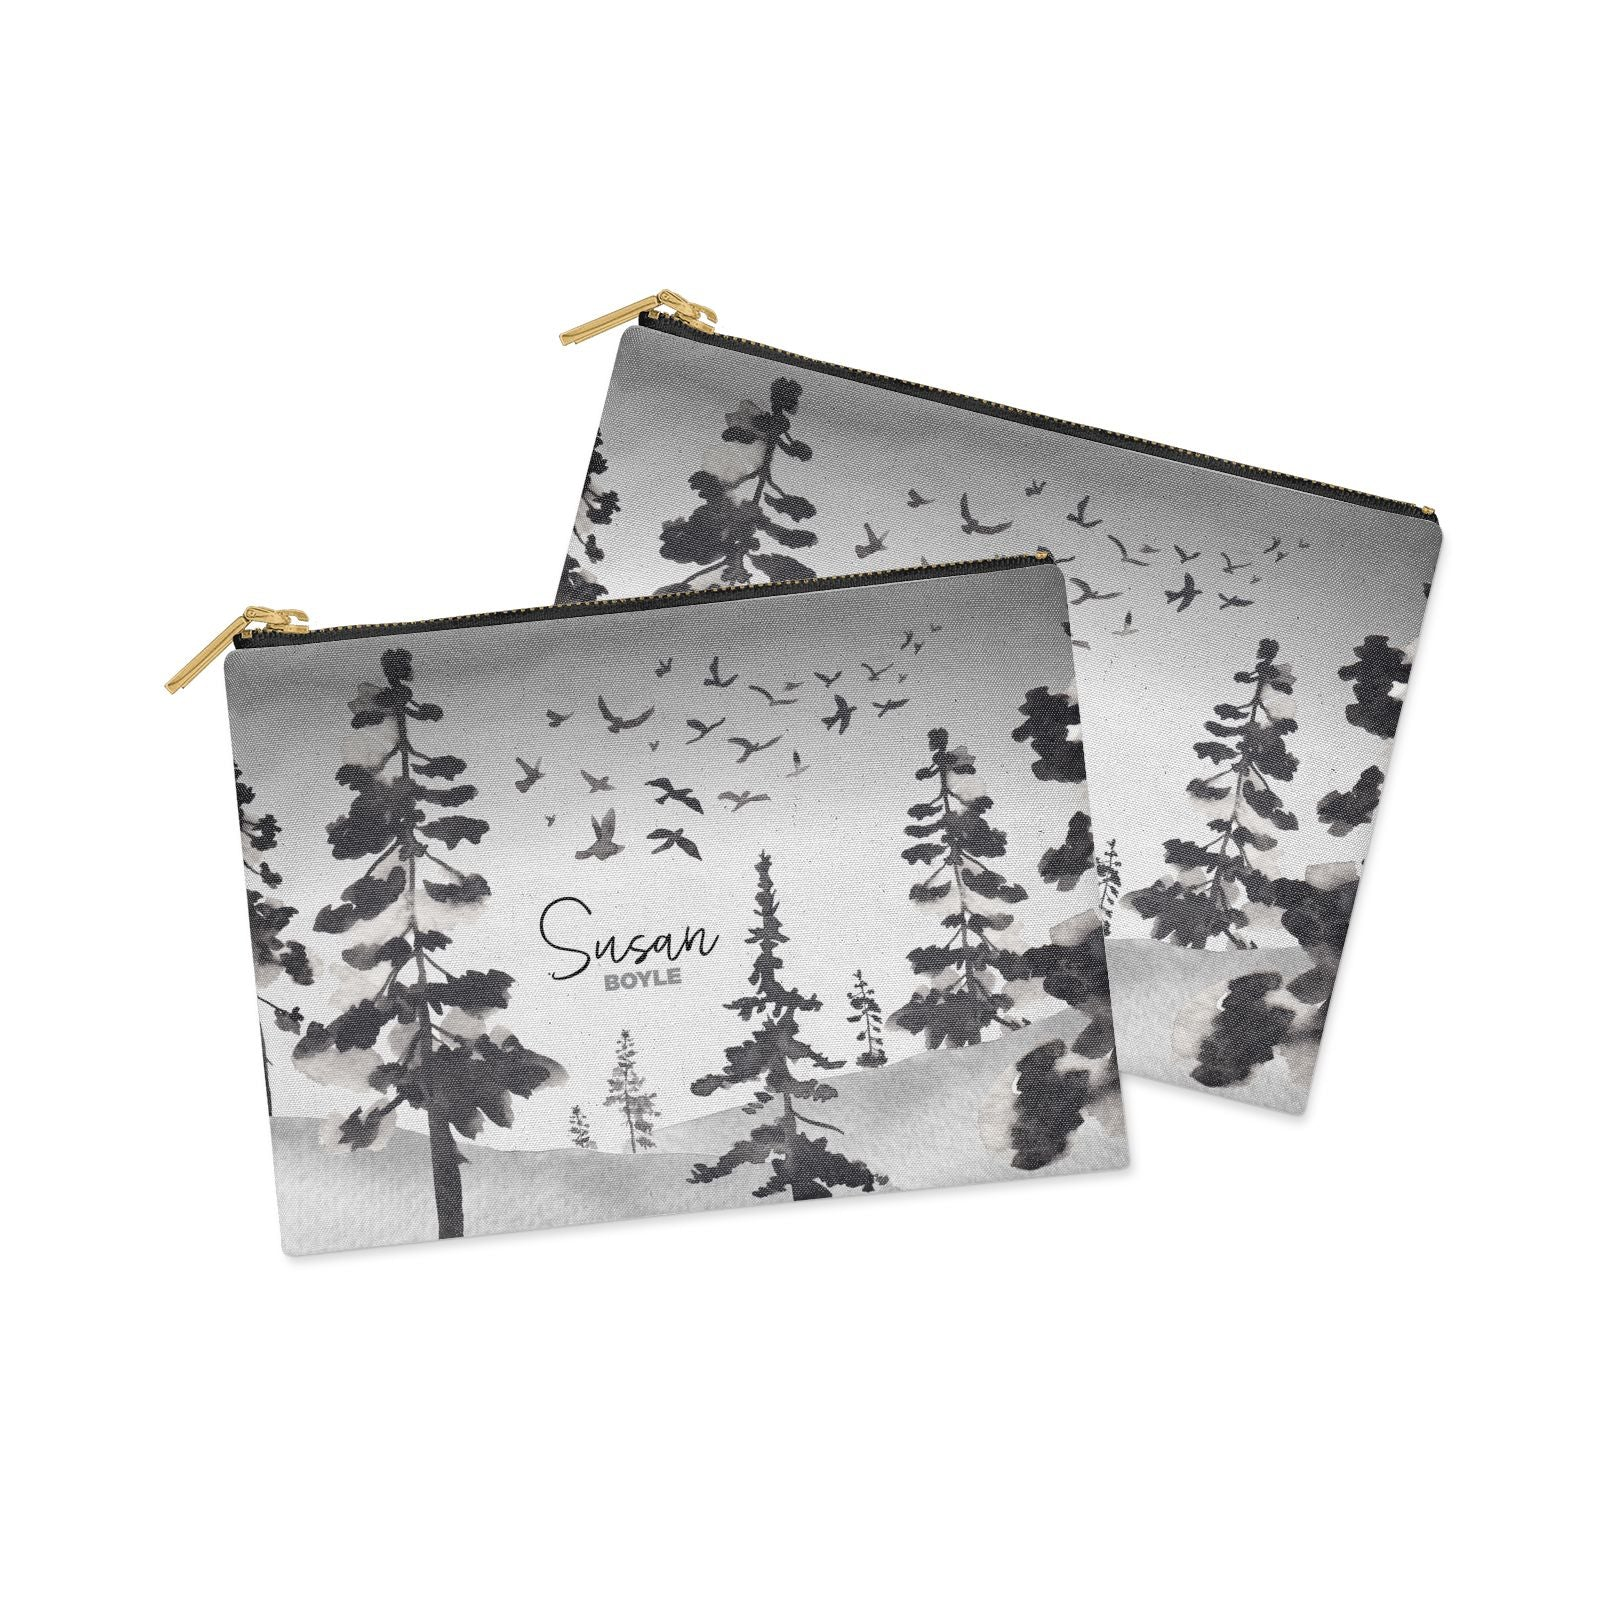 Personalised Monochrome Forest Clutch Bag Zipper Pouch Alternative View